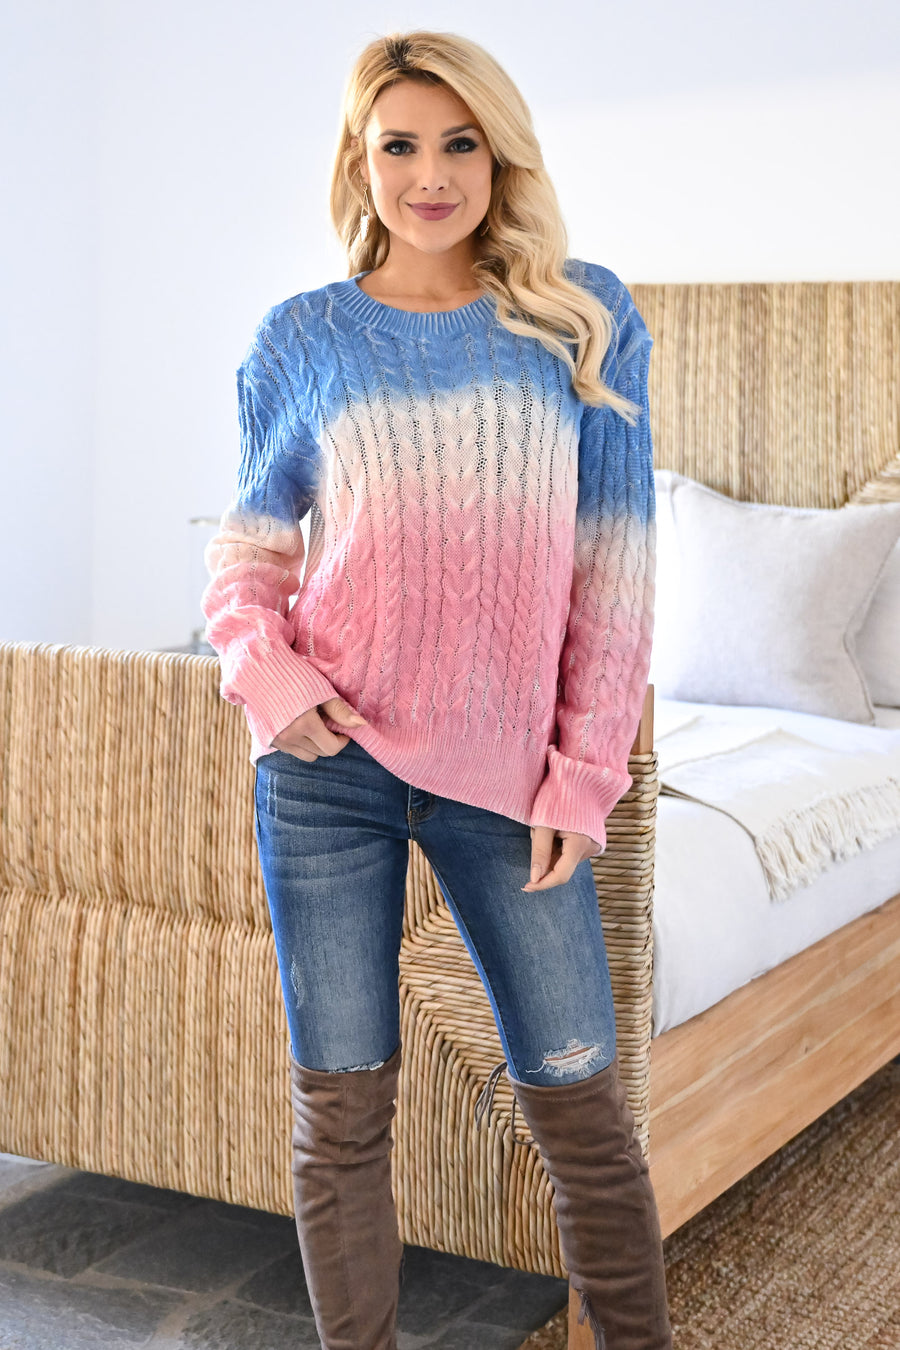 Cotton Candy Dreams Ombre Sweater womens trendy color block dip dye cable knit long sleeve sweater closet candy front